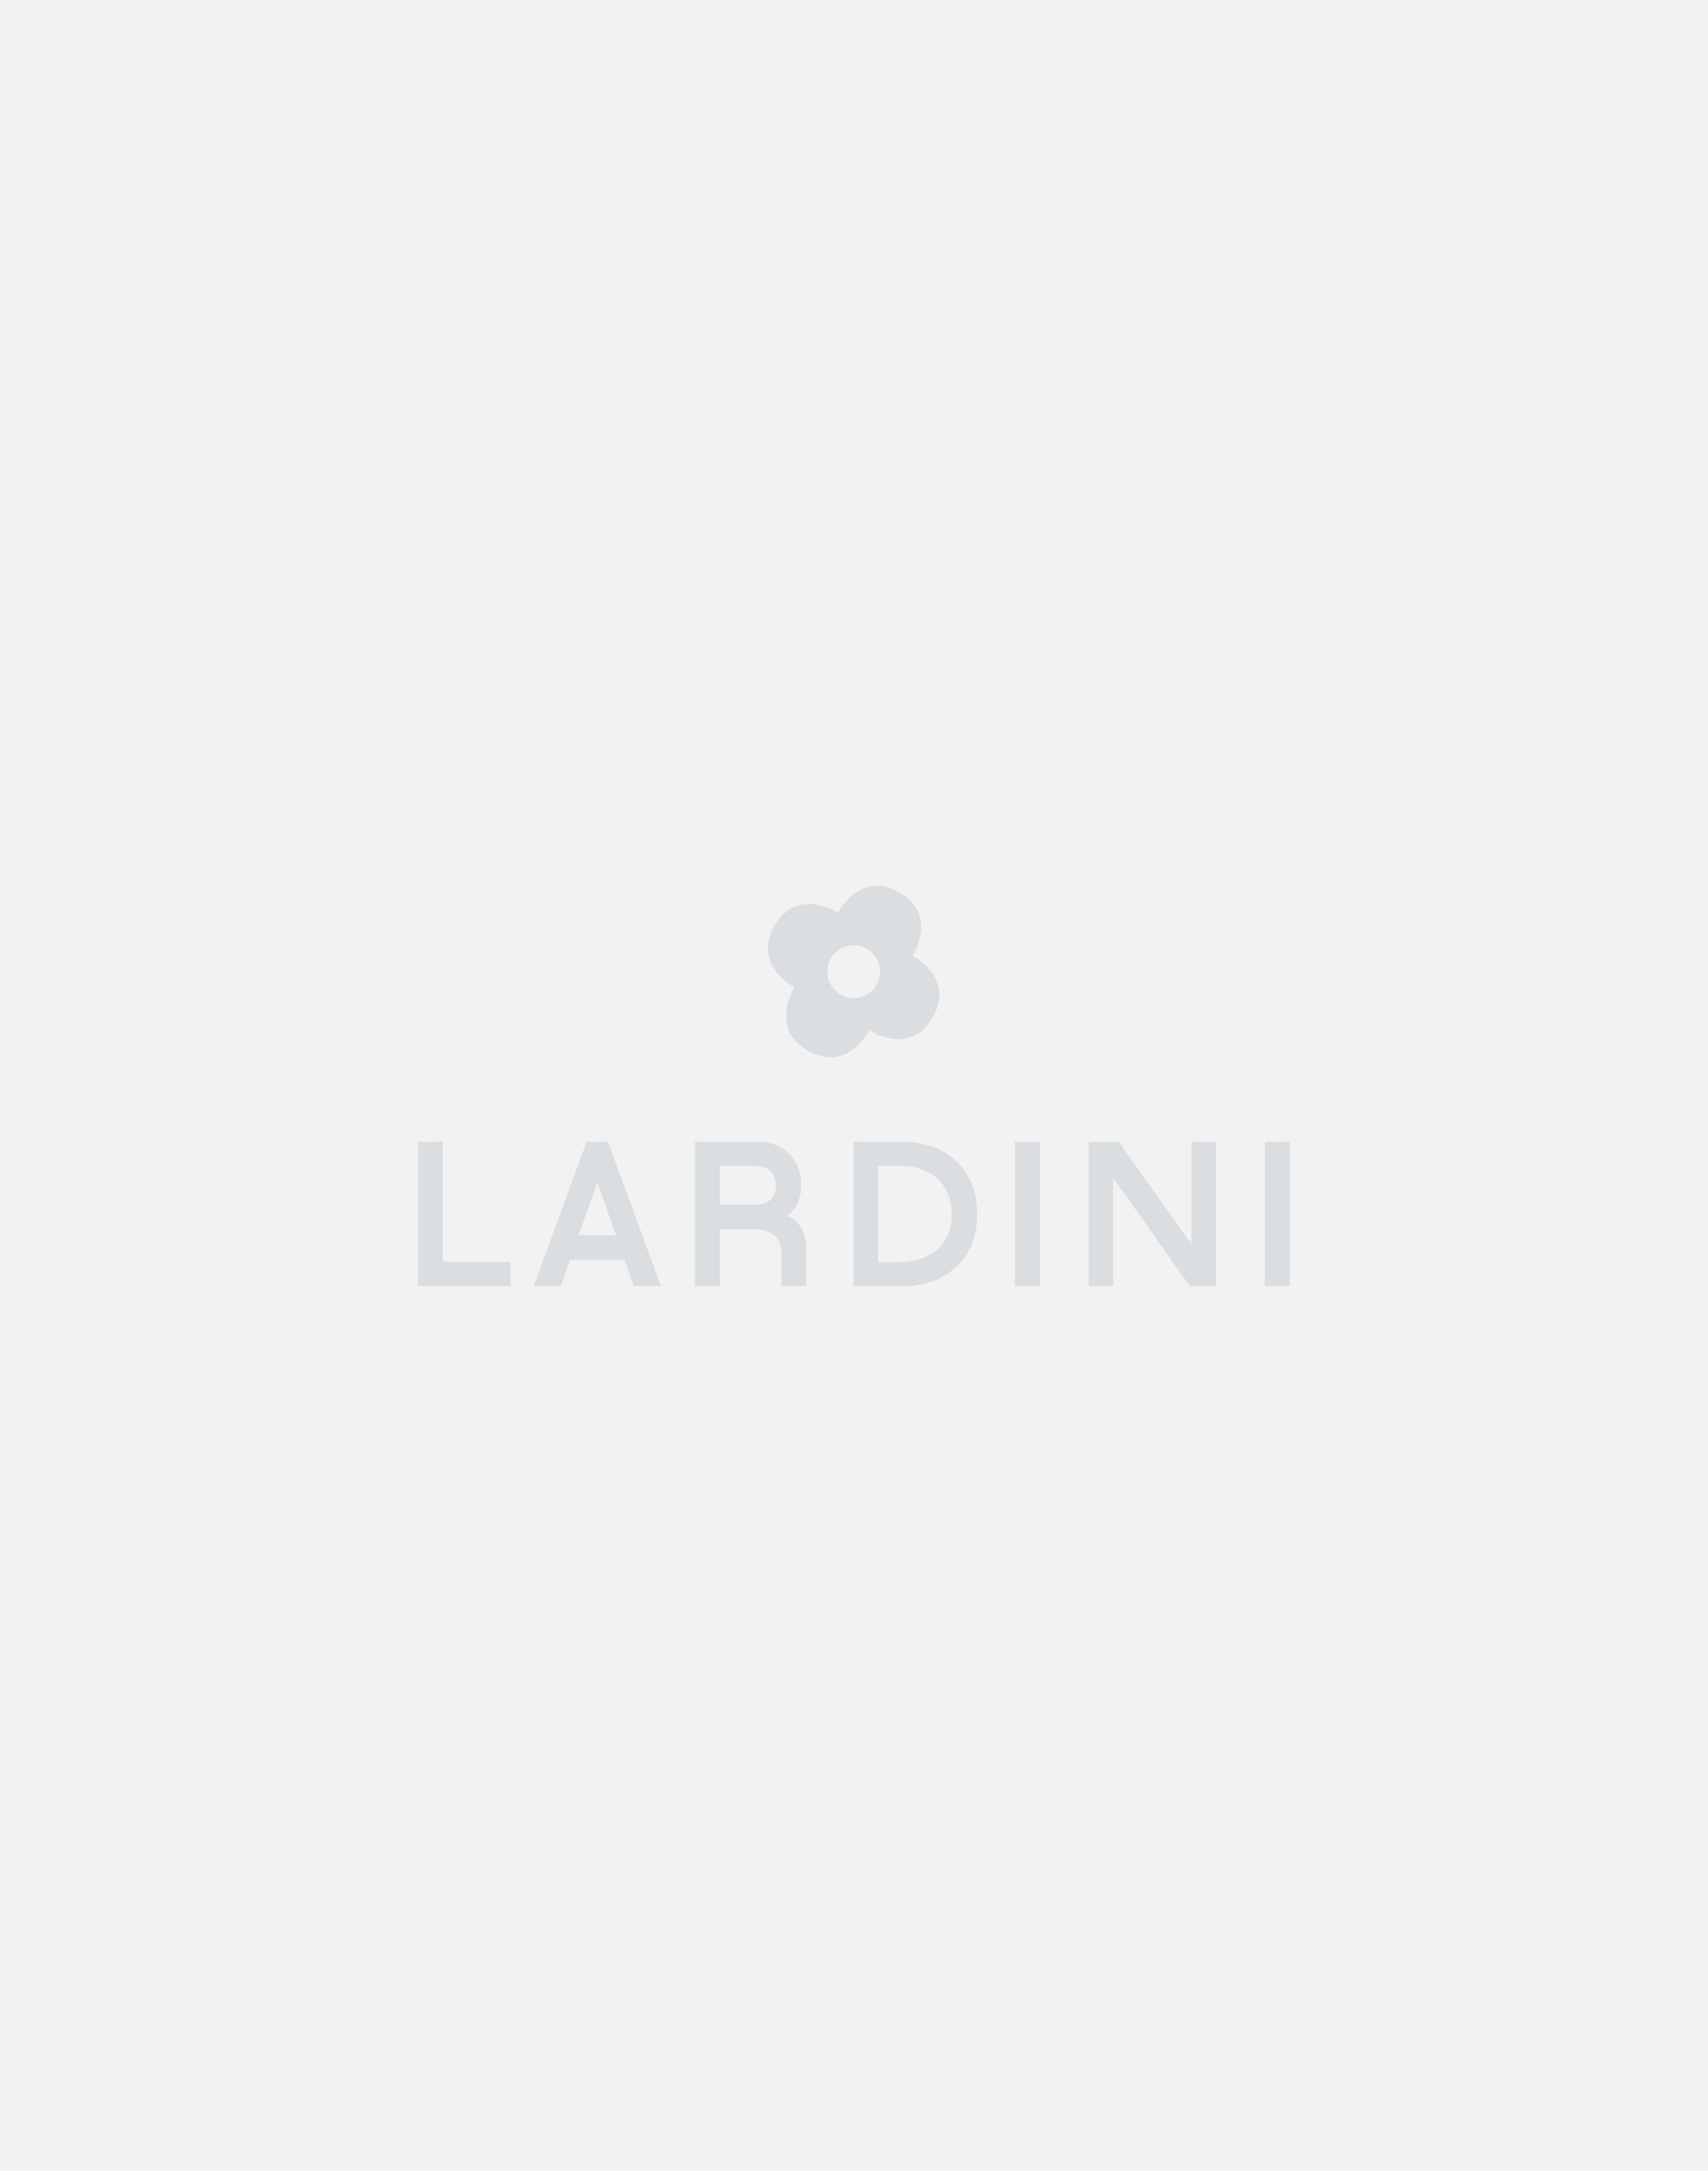 Burgundy French collar shirt with patterned print